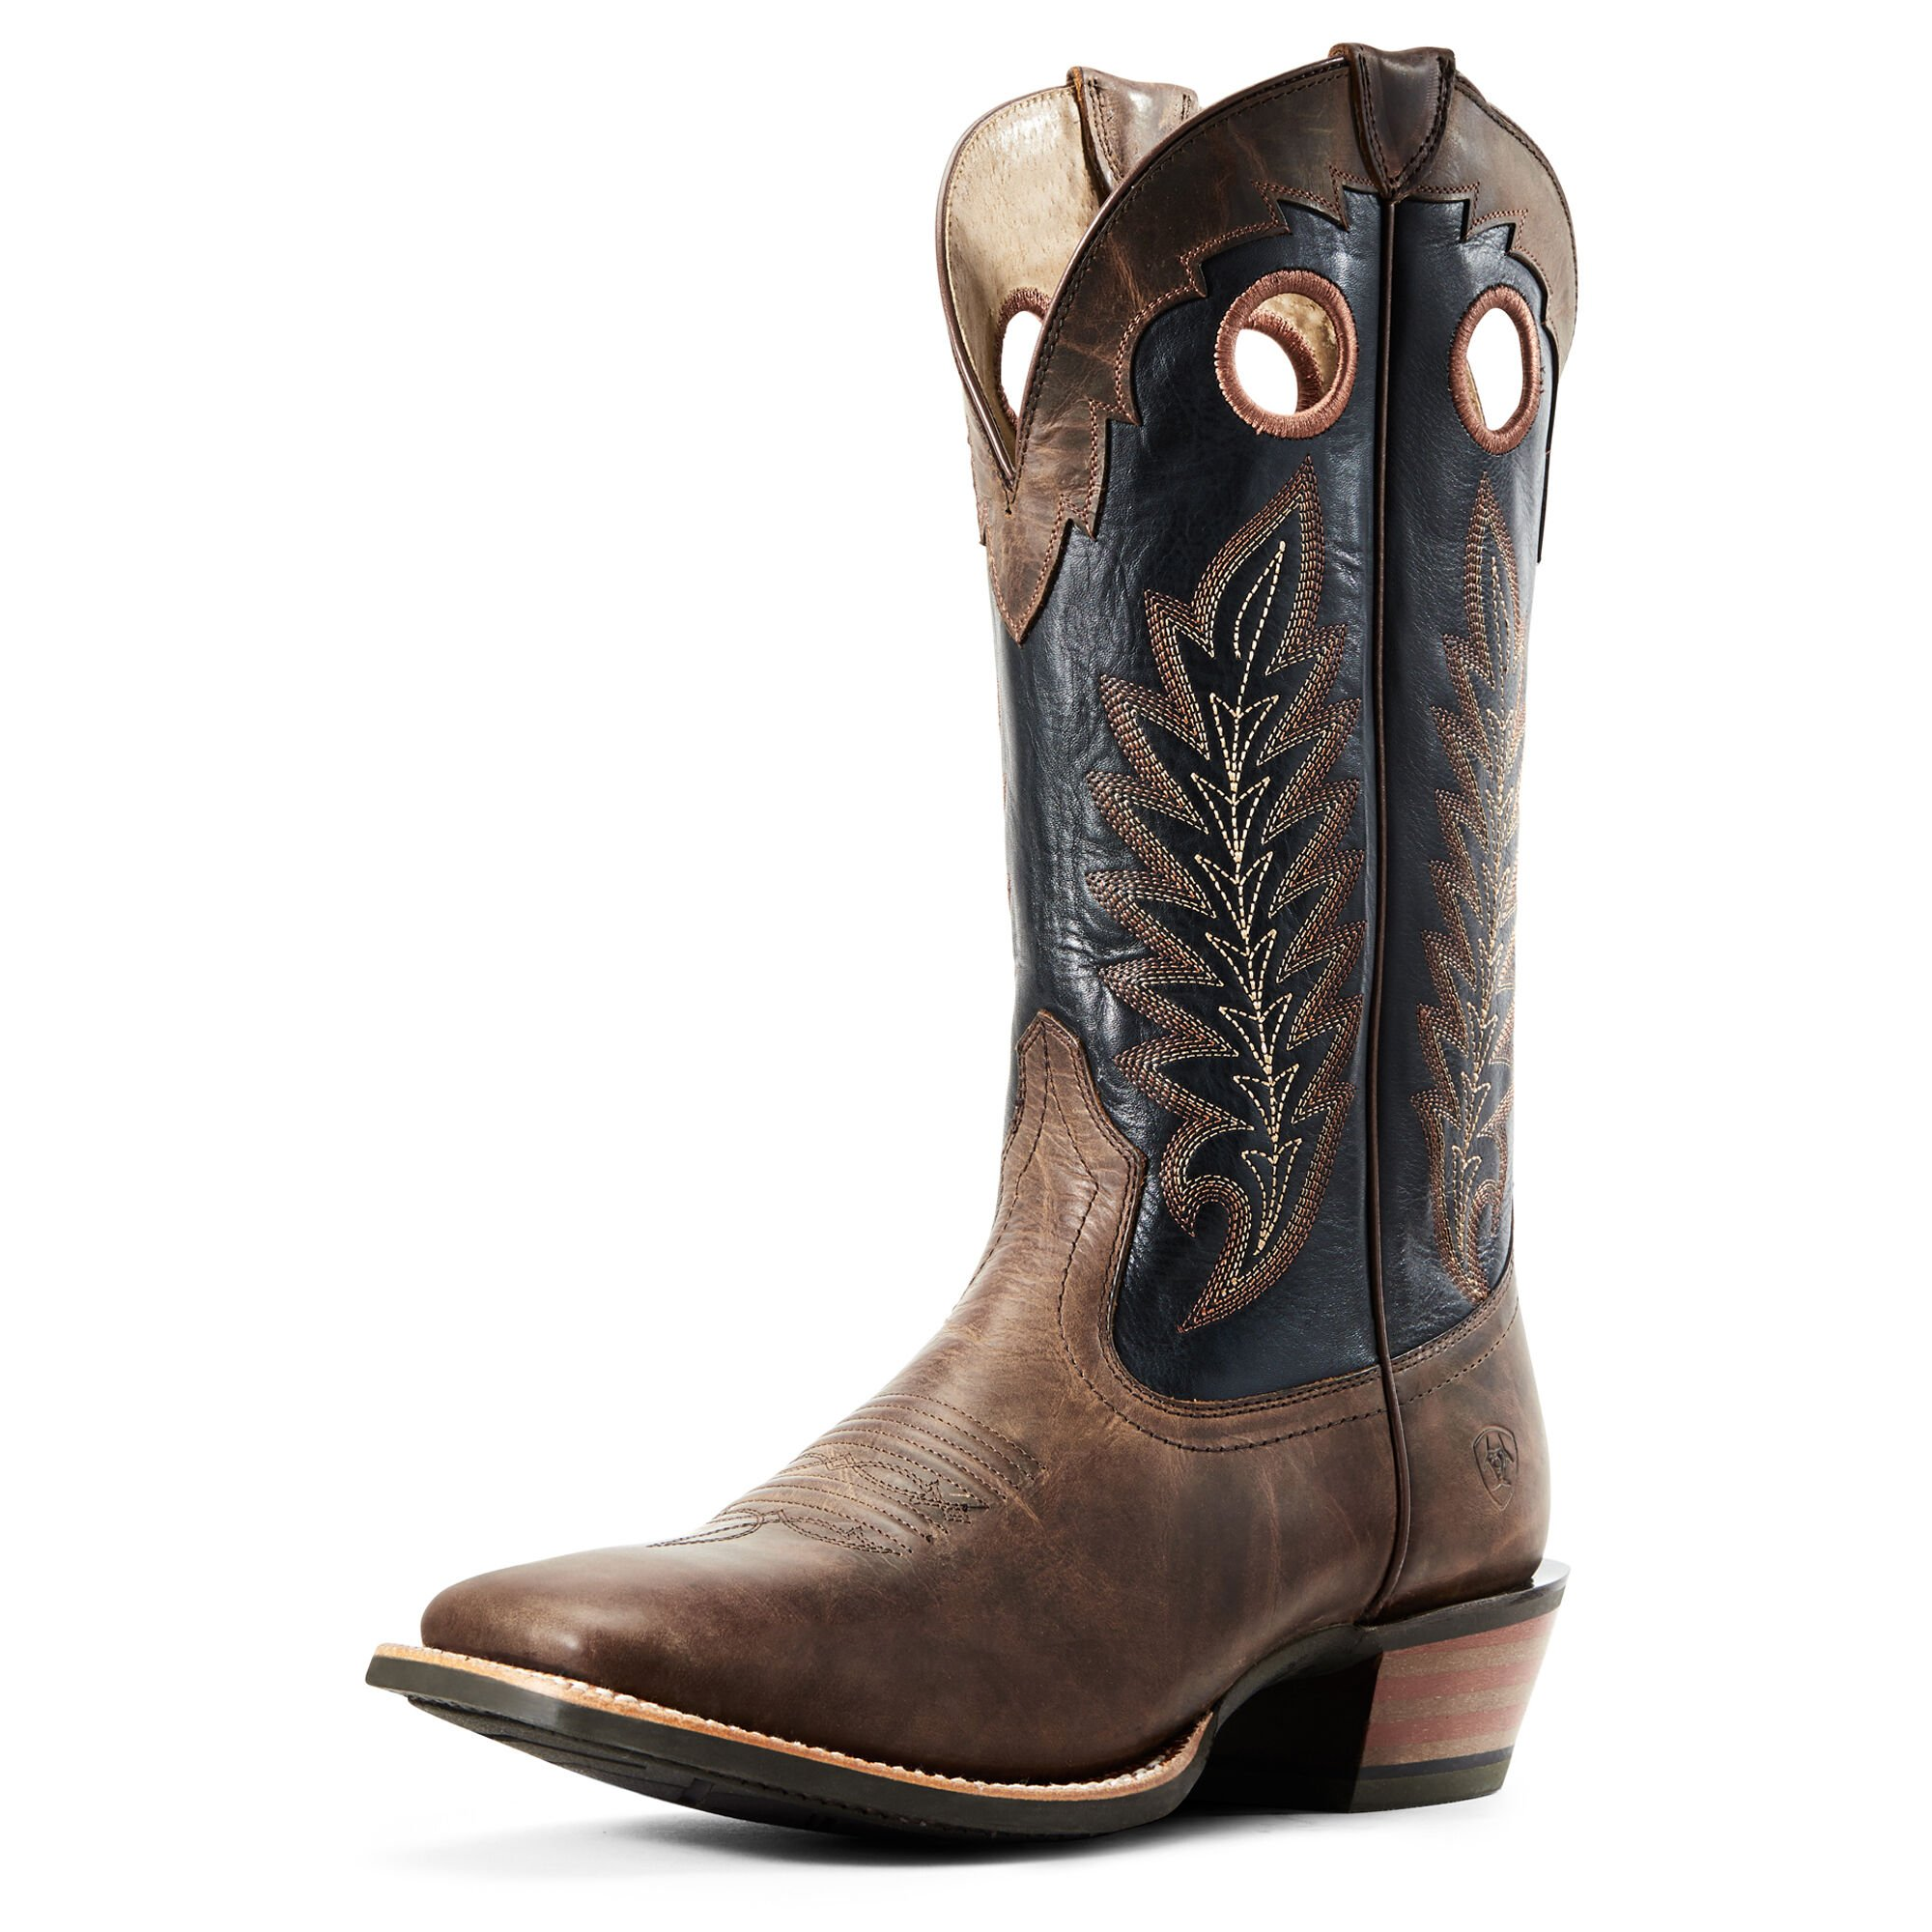 Real Deal Western Boot